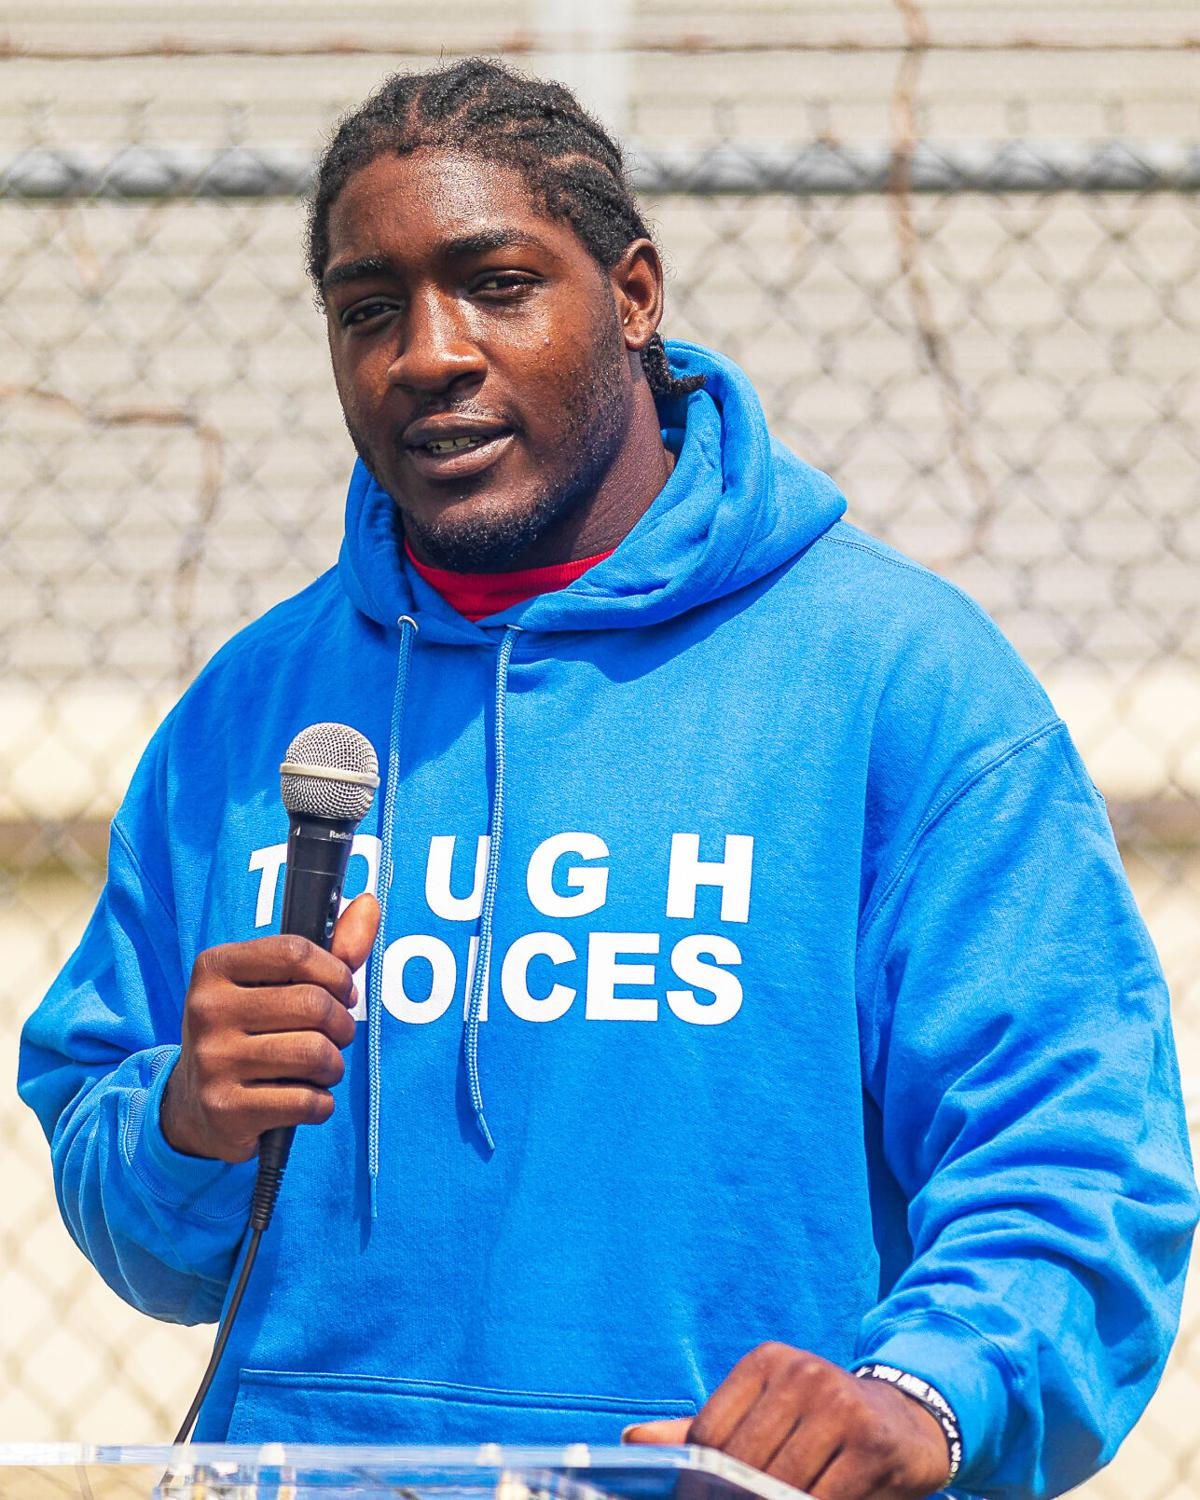 Tevon Coney, former NFL player and founder of Tough Choices Foundation, speaks briefly to the students before their breakout session.